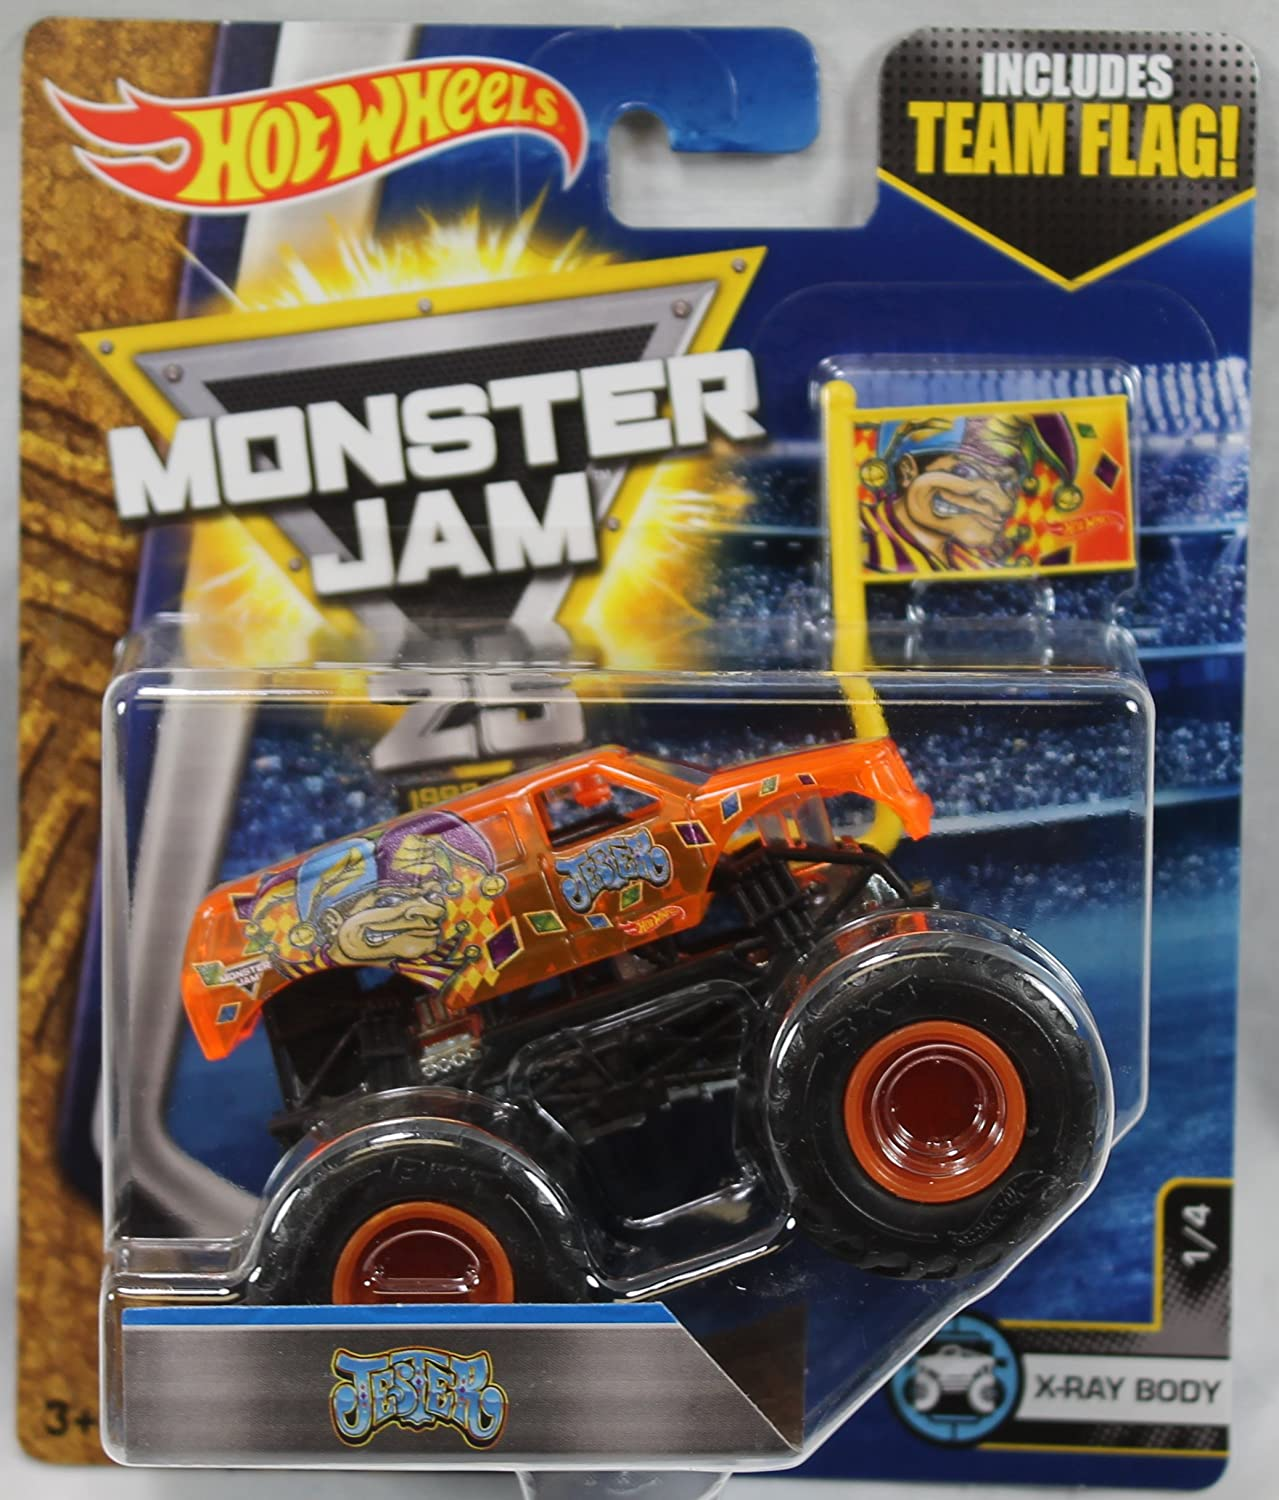 2017 Hot Wheels Monster Jam 1:64 Scale Truck with Team Flag - Jester